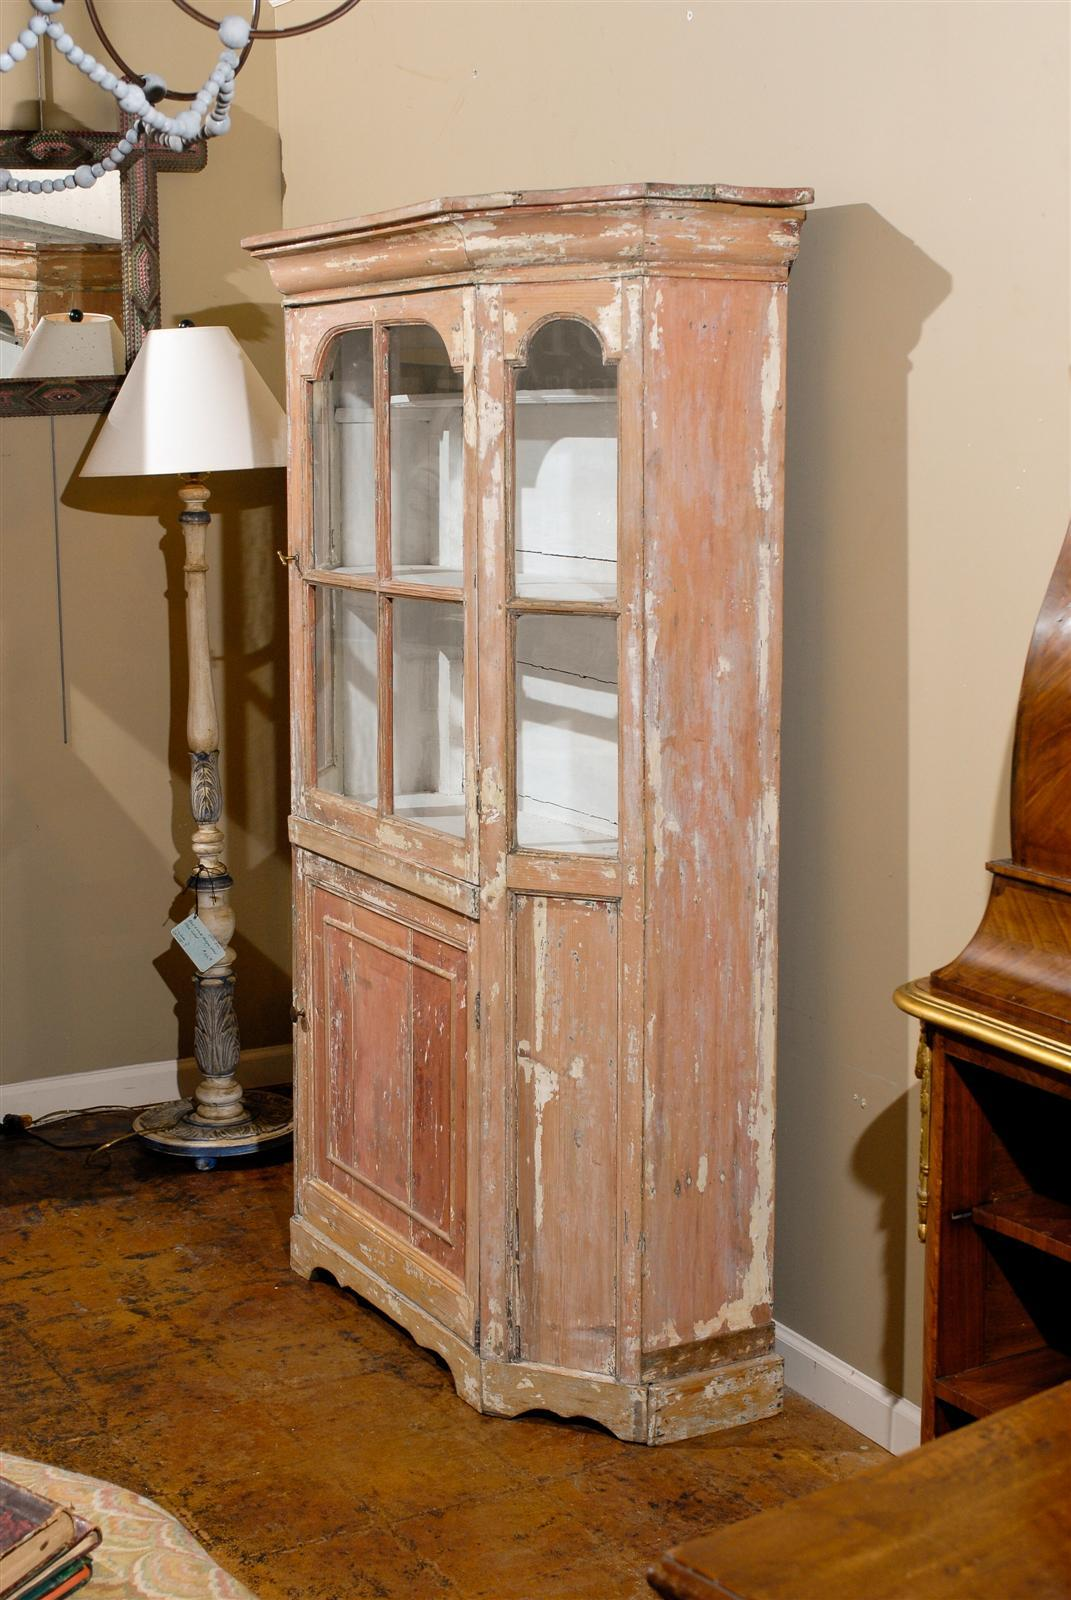 19th Century Dutch 1850s Curio Cabinet with Glass Door over Wooden Door and Canted Sides